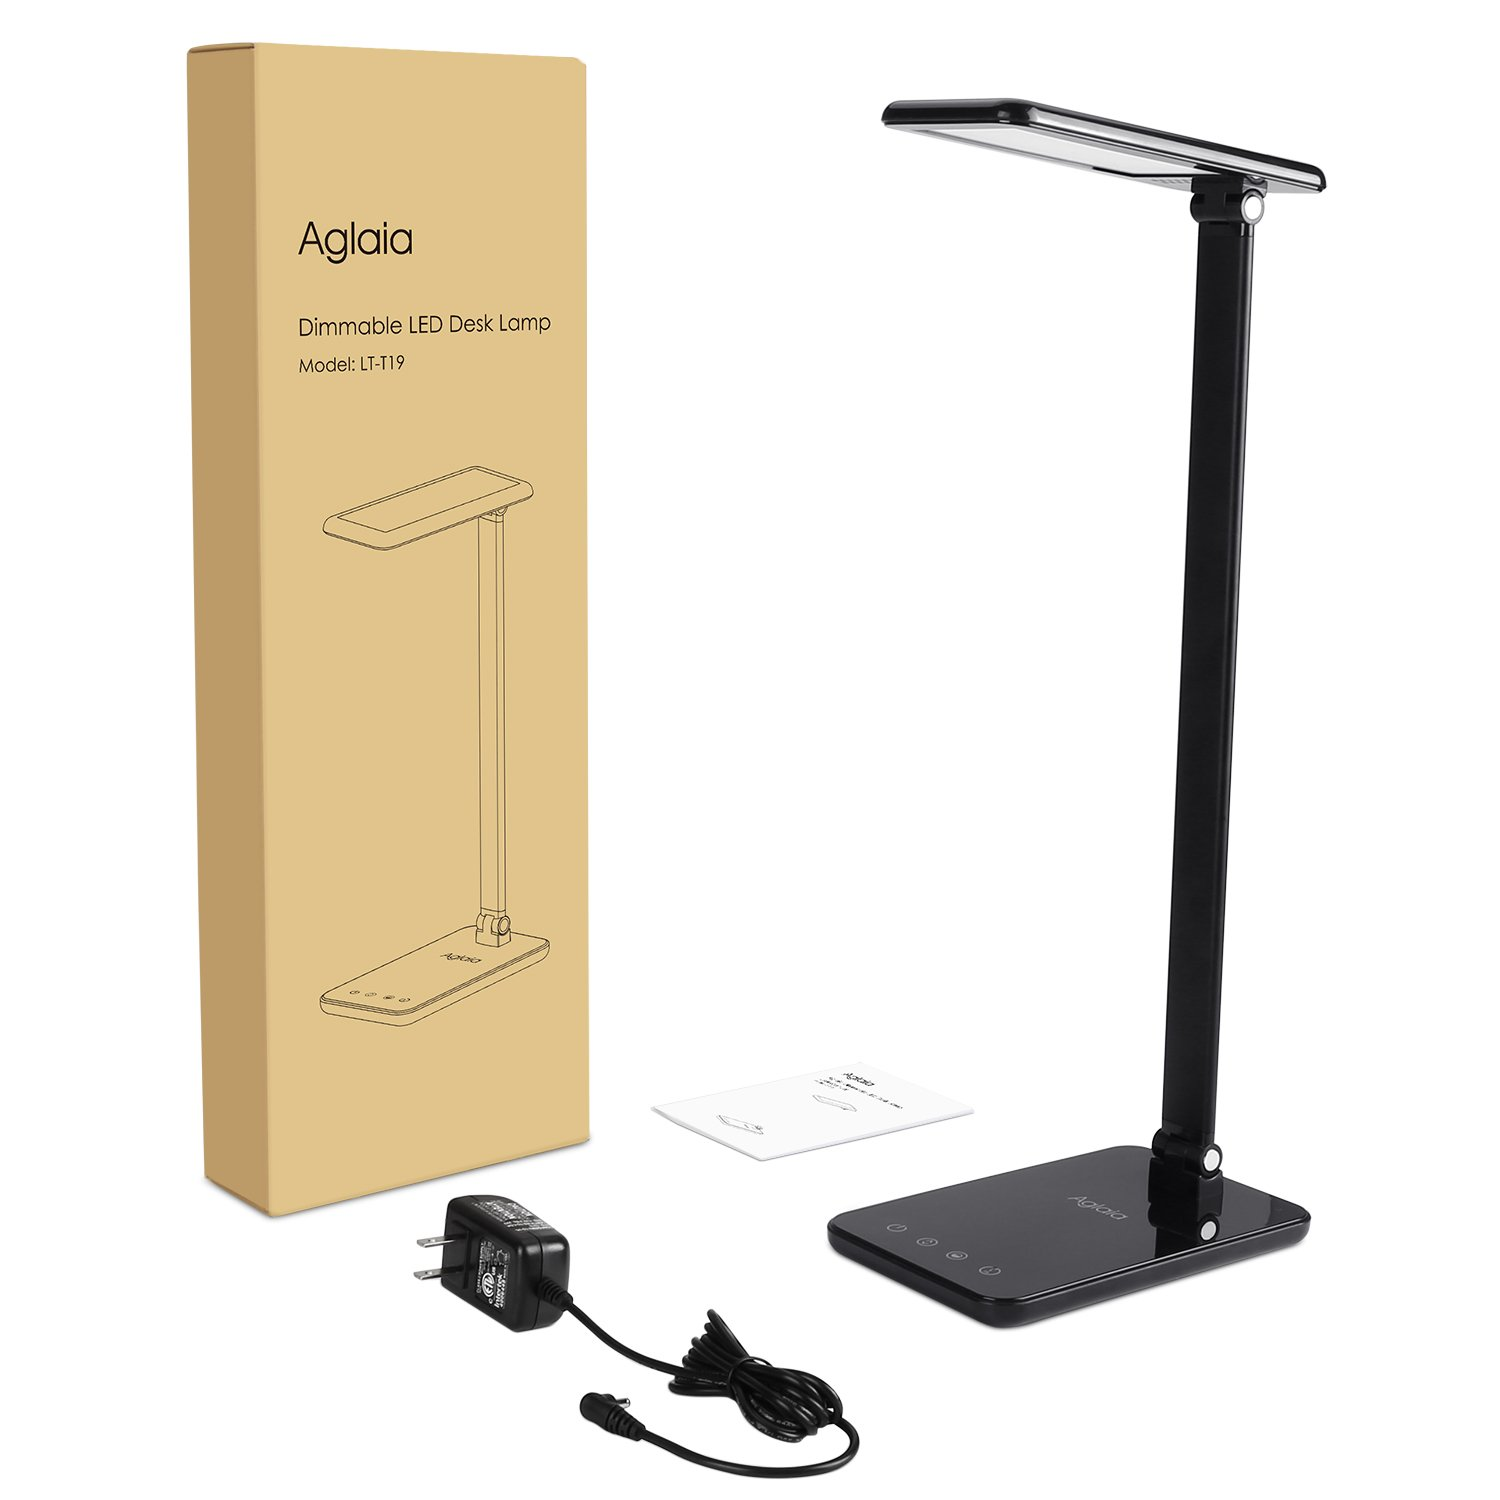 LED Desk Lamp 8W, Aglaia Eye-Caring Table Lamps with Dimmable Touch Control, Stepless Brightness Levels and Lighting Modes, Aluminum Alloy ARM, 1-Hour Auto Timer, Memory Function by Aglaia (Image #8)